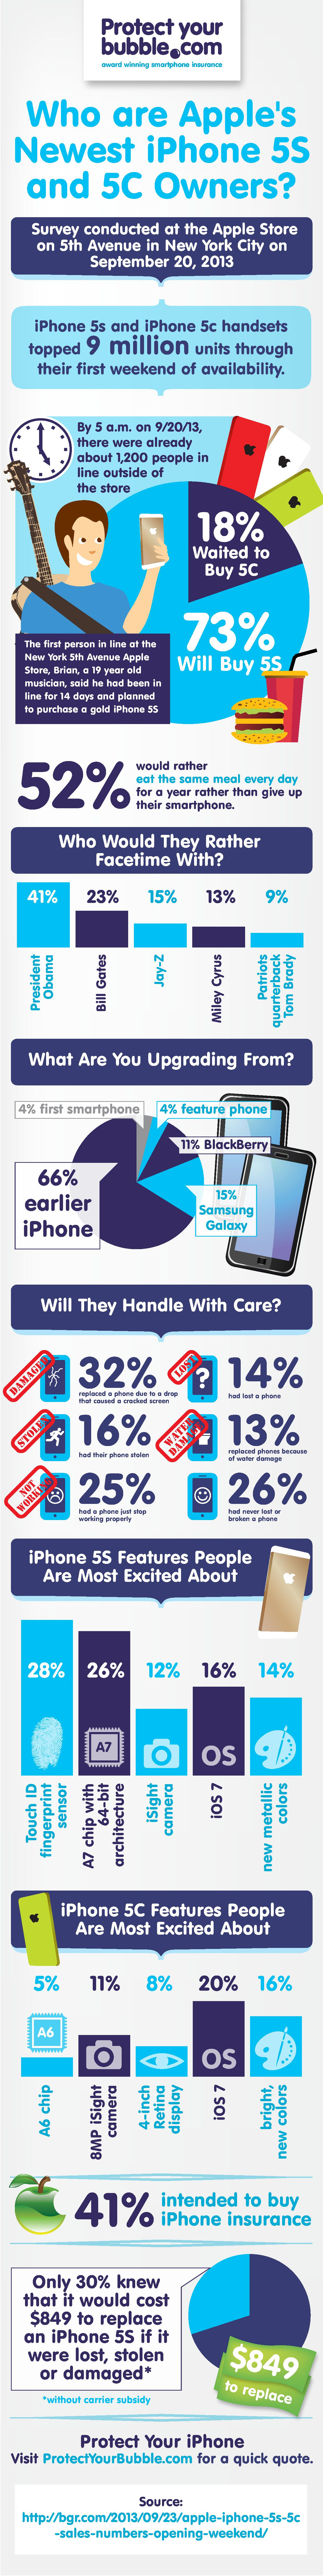 5. iPhone-5S-and-iPhone-5C-infographic-V3-1_1